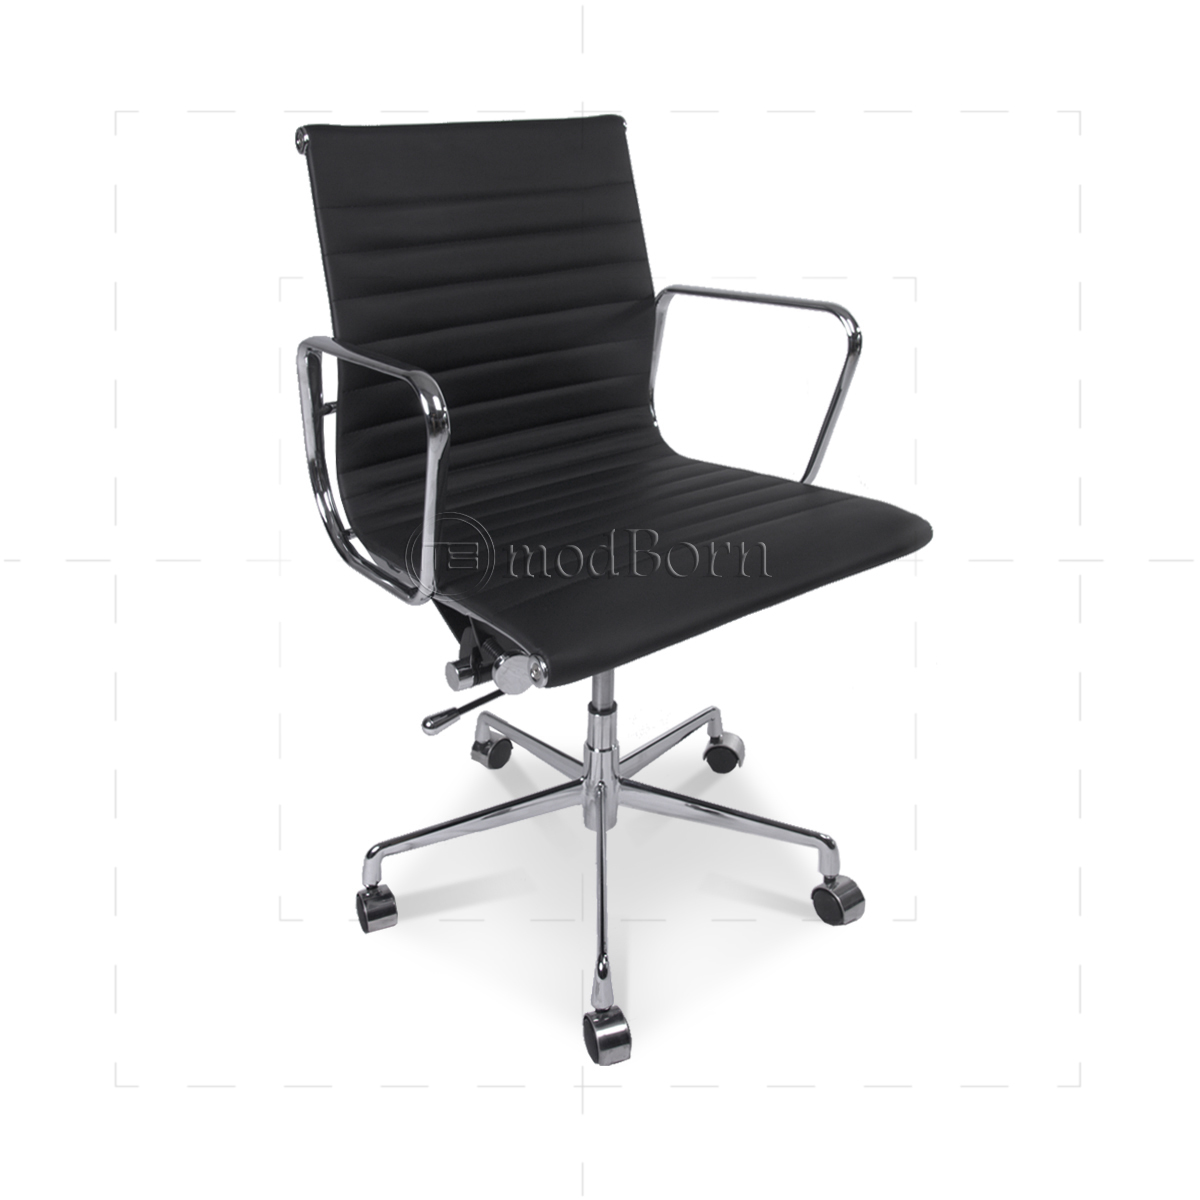 EA117 Eames Style Office Chair Low Back Ribbed Black Leather : eames office lowback black sideview 1200x1200 from www.modborn.com size 1200 x 1200 jpeg 272kB